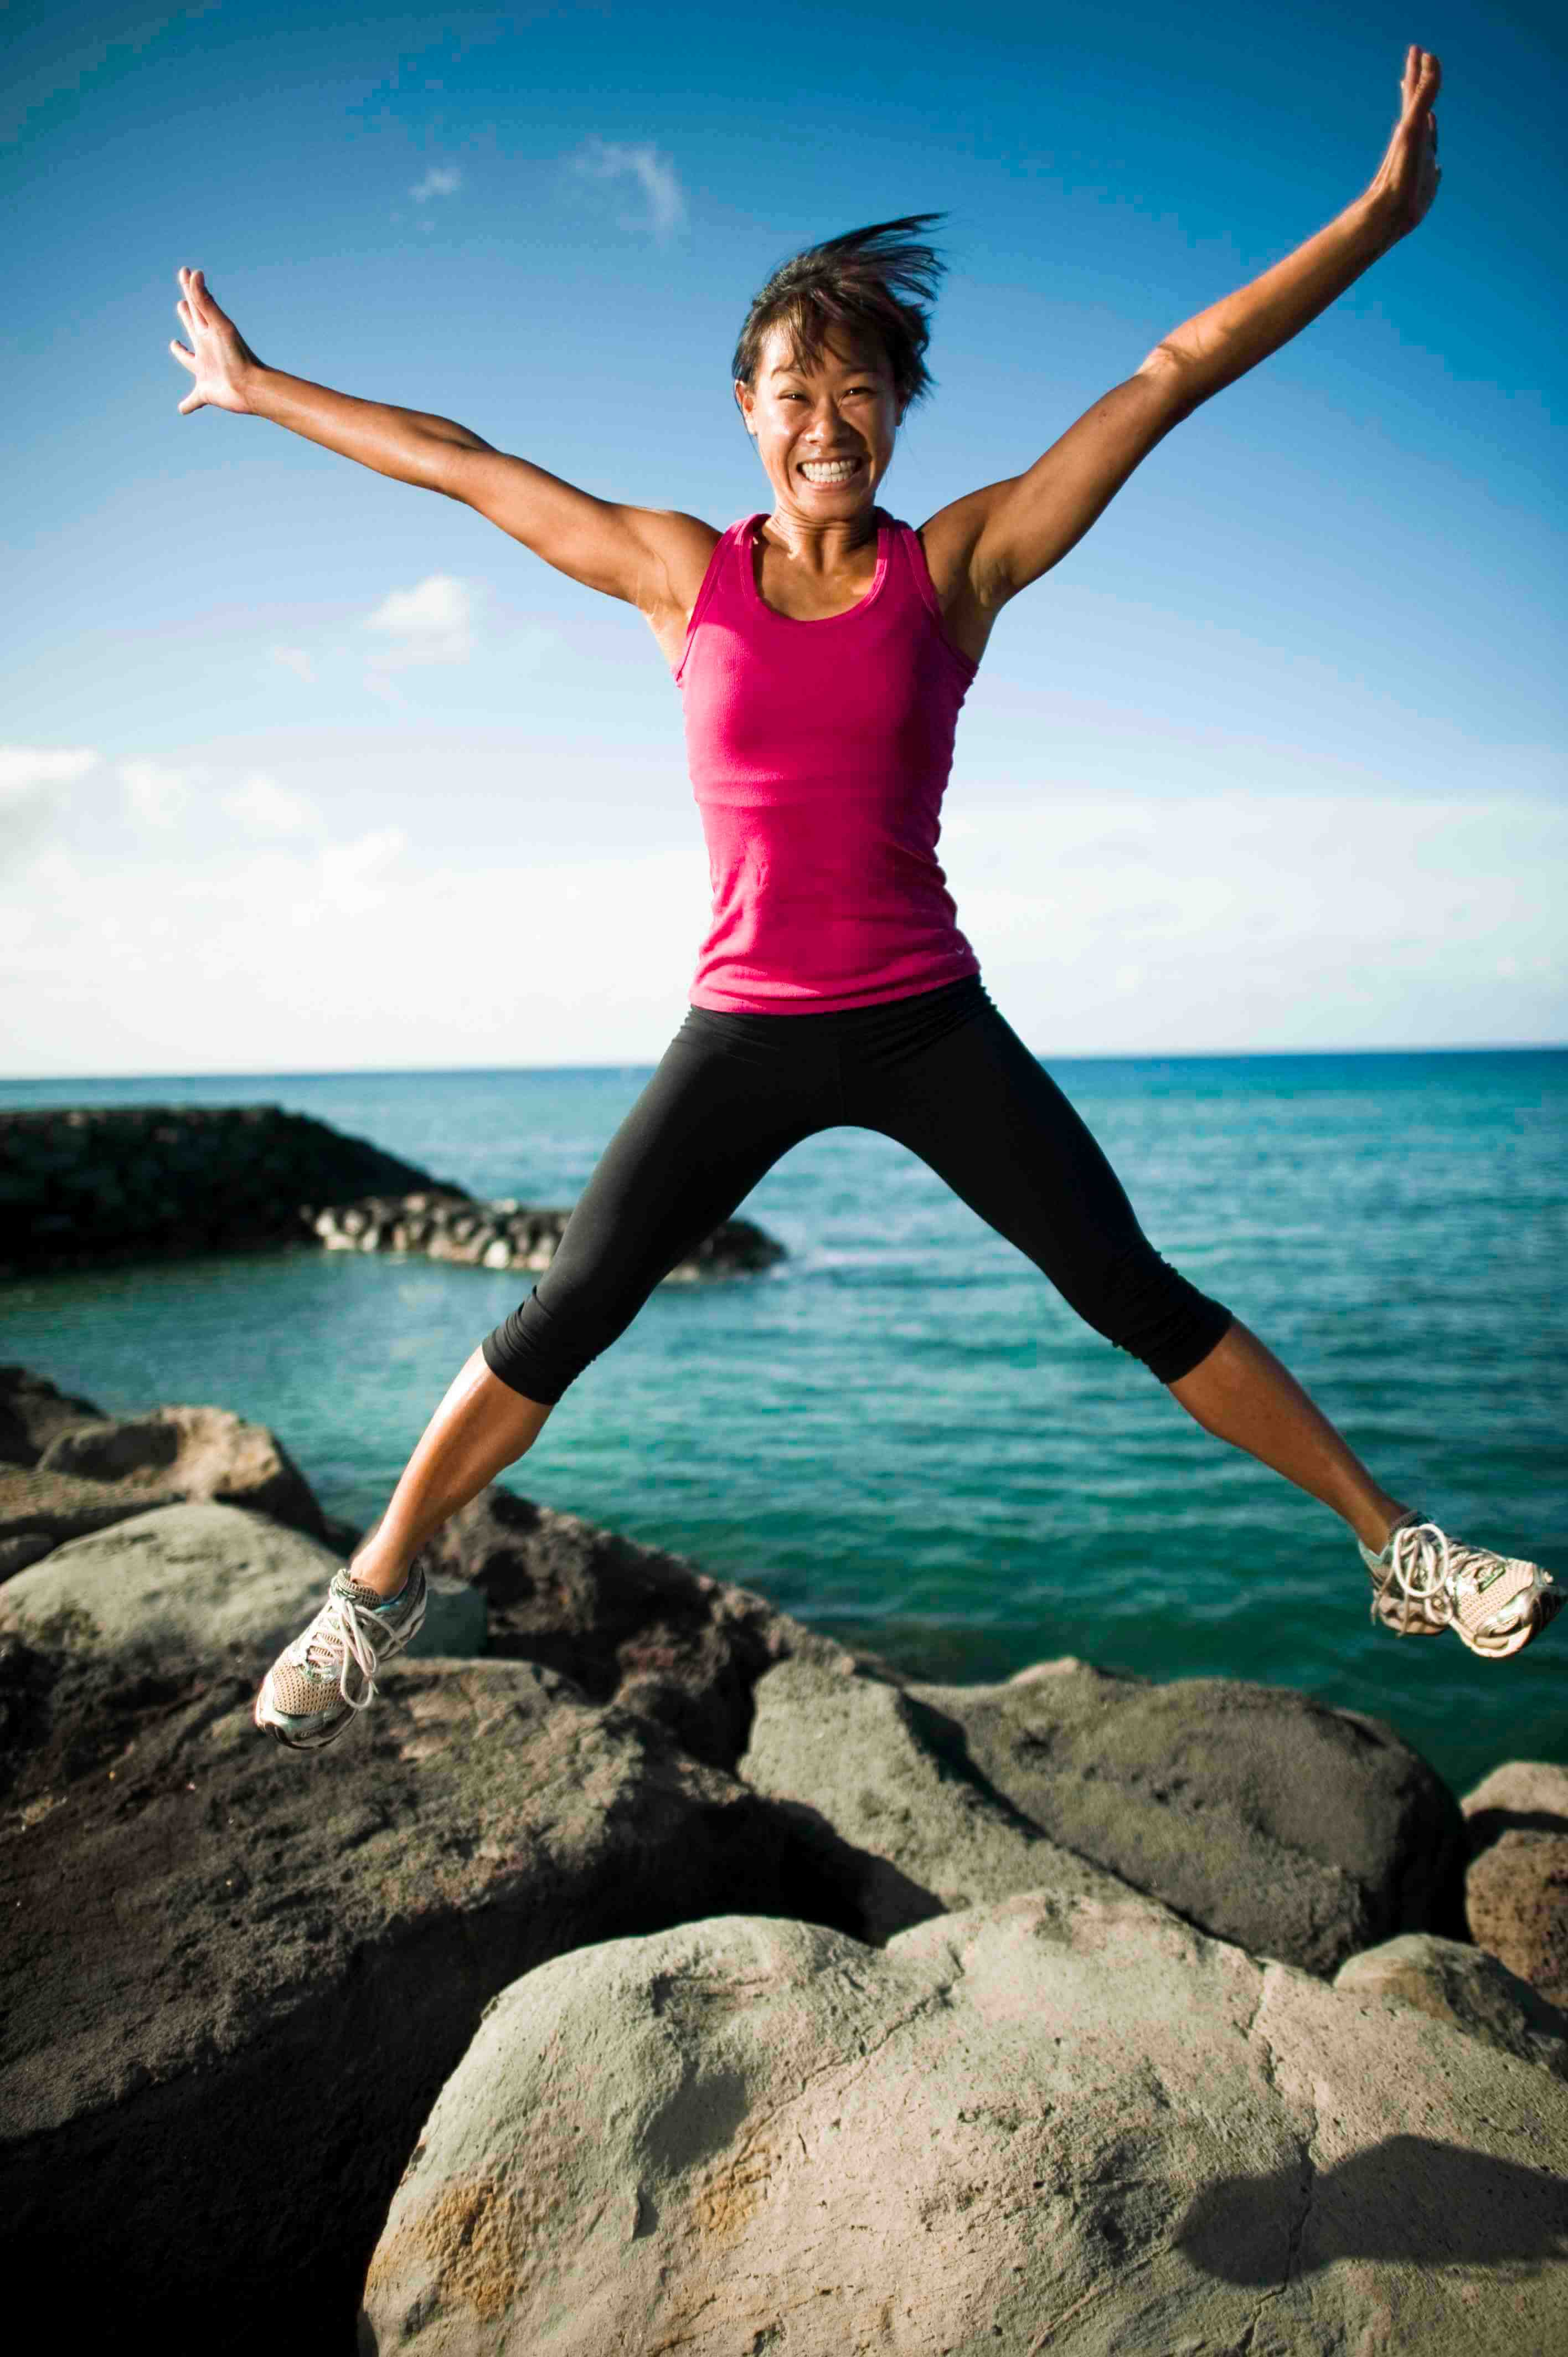 Fun Approaches to Get Fit Without a Gym